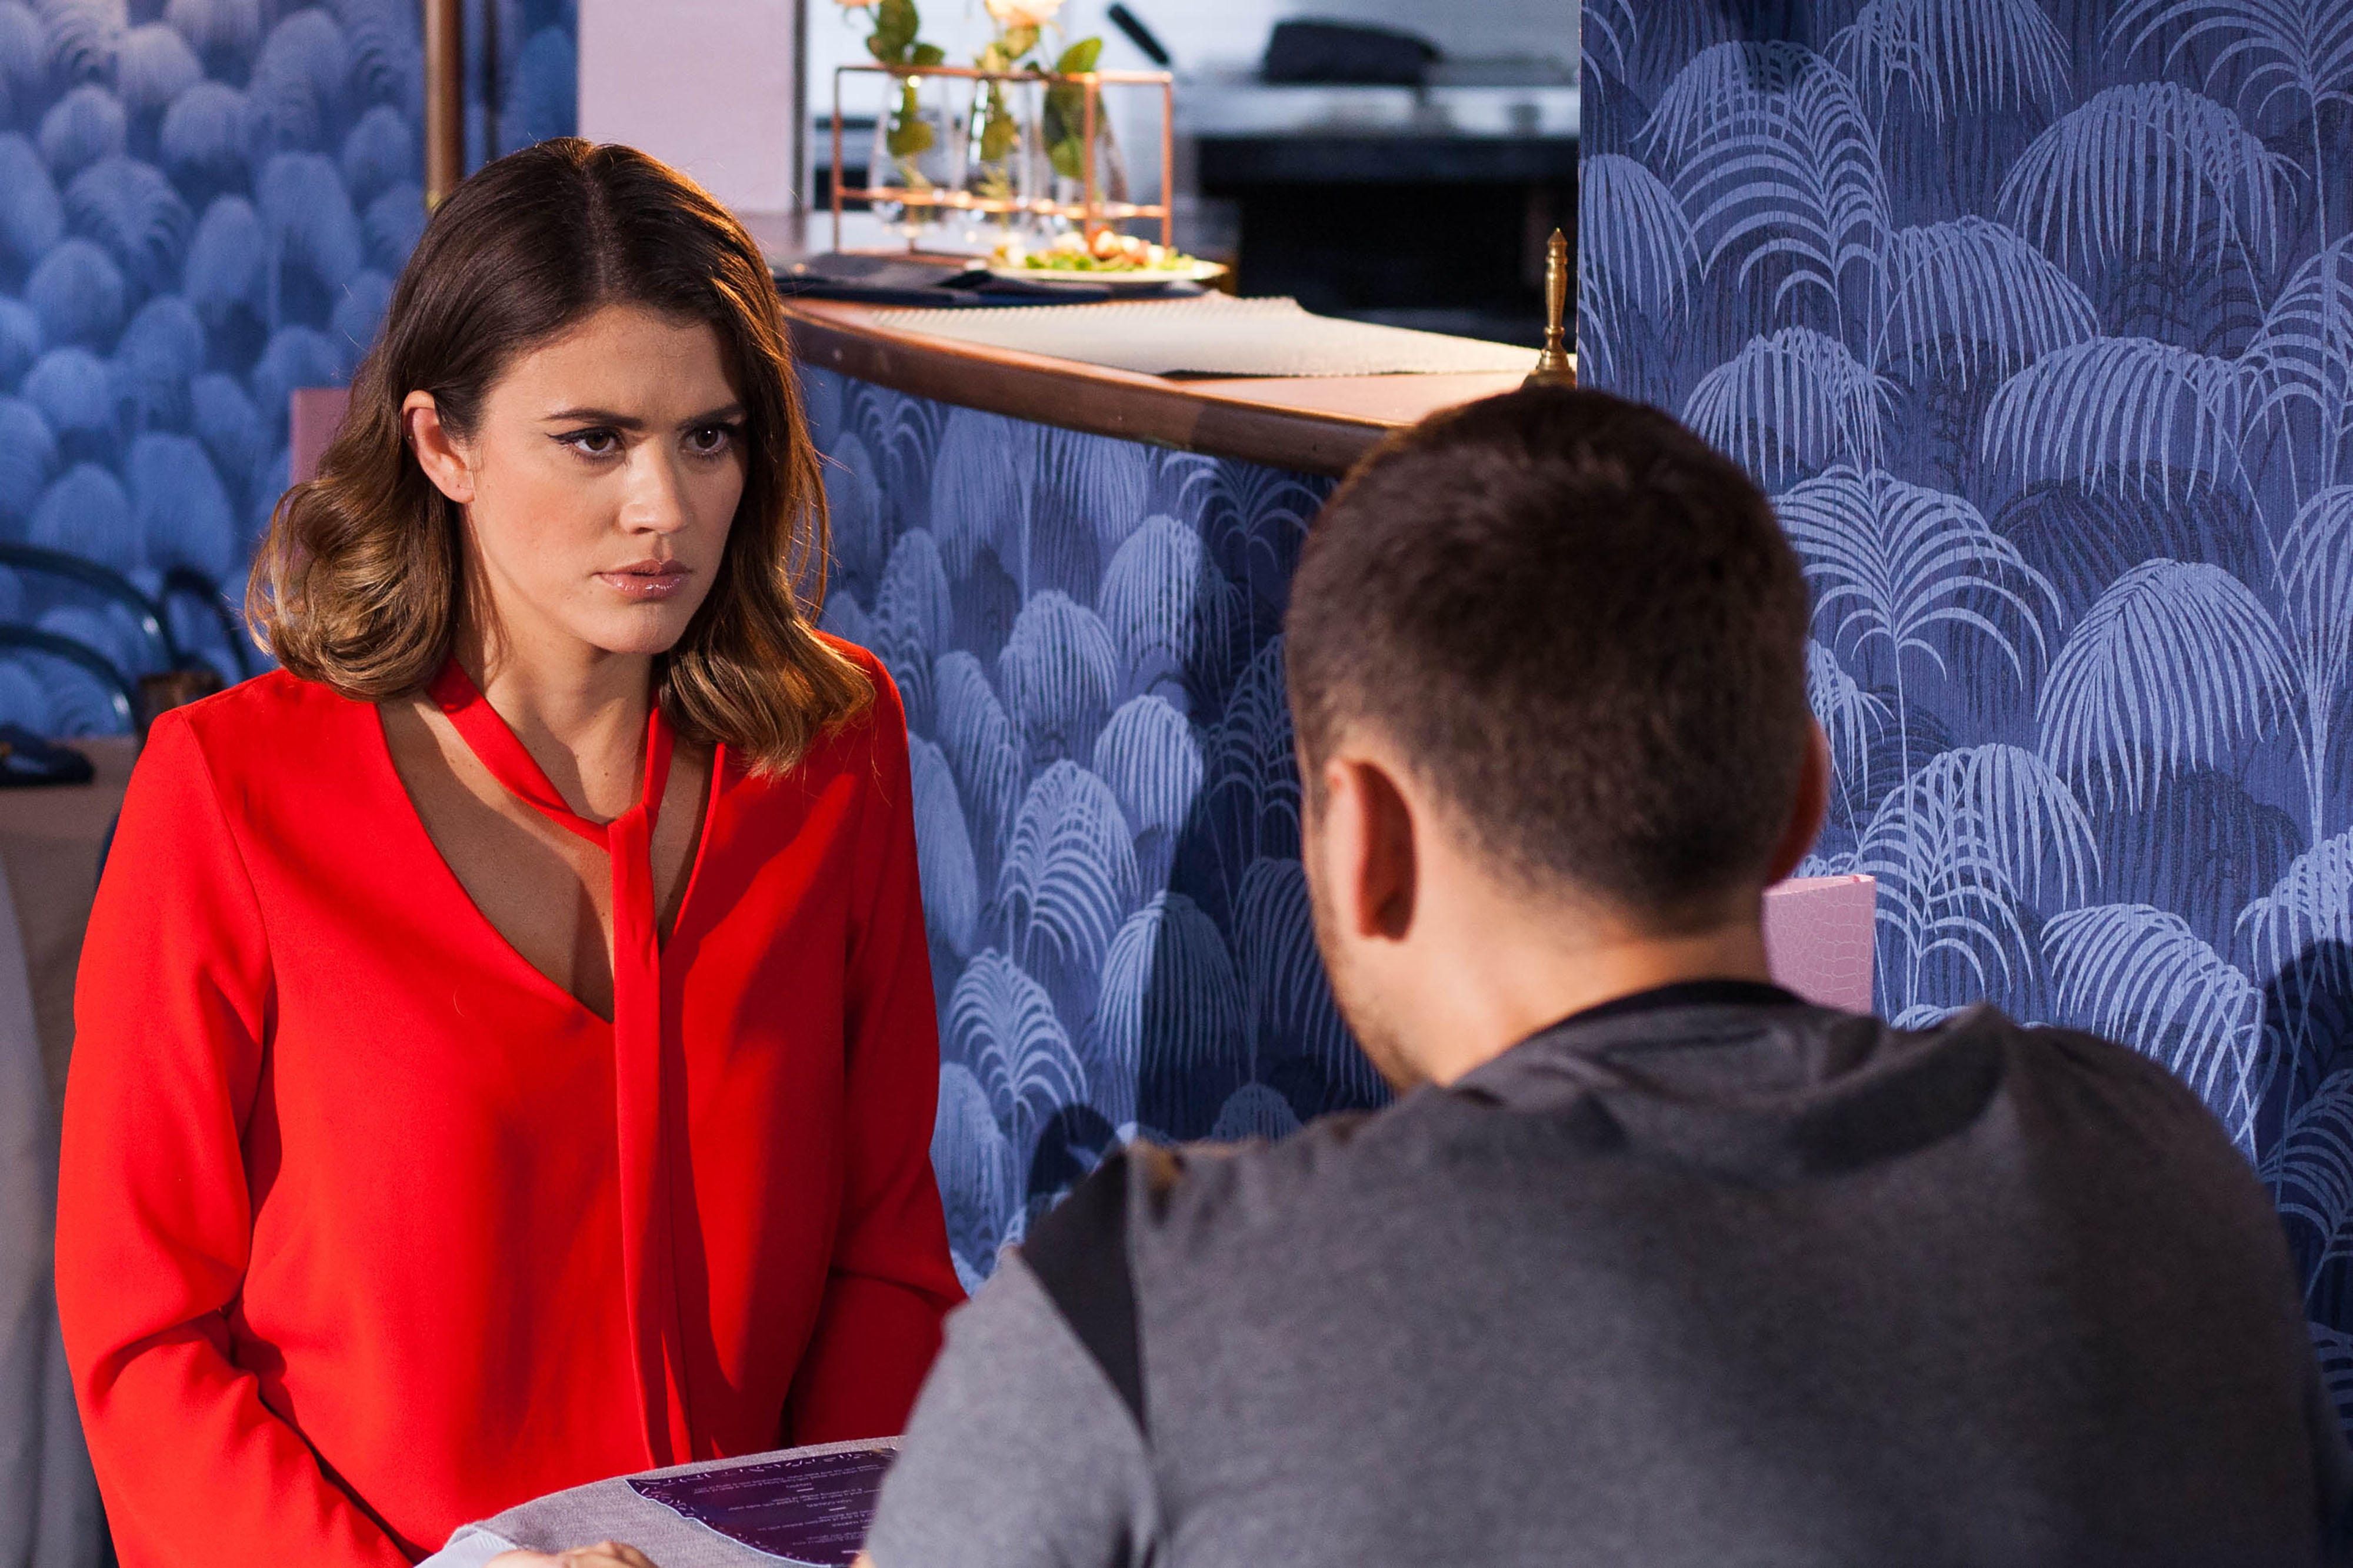 FREDDIE QUESTIONS WHAT'S WRONG WITH ELLIE EMBARGOED 7 MARCH